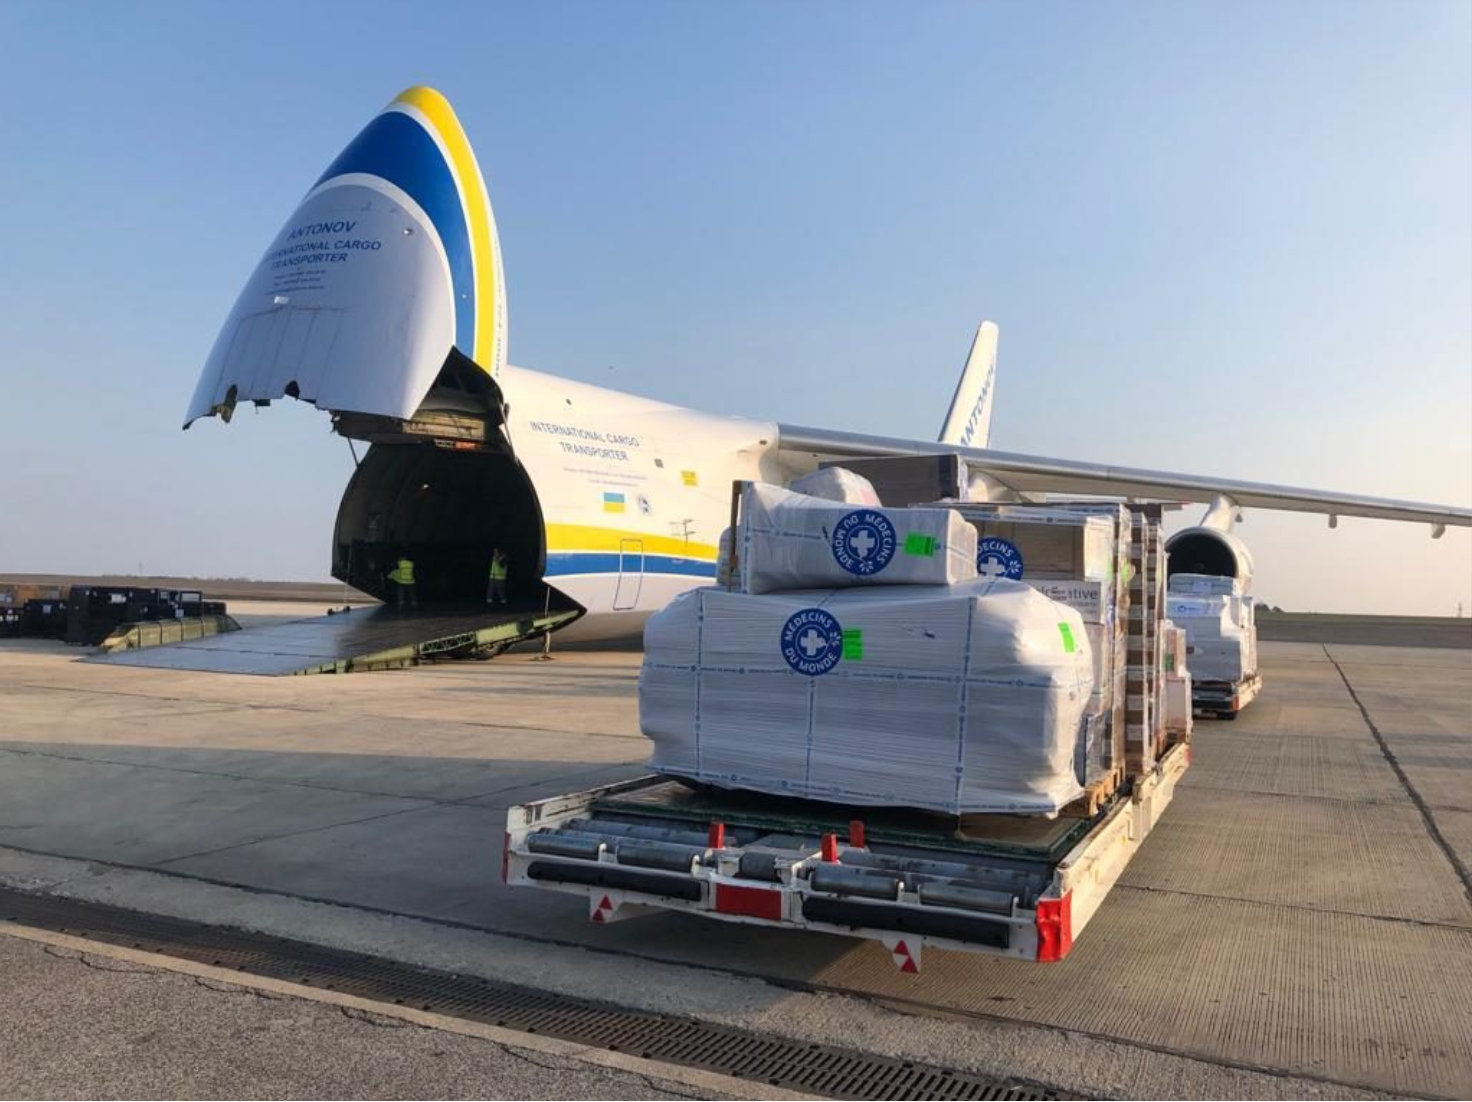 Antonov and Bolloré Logistics rushed to aid in Mozambique